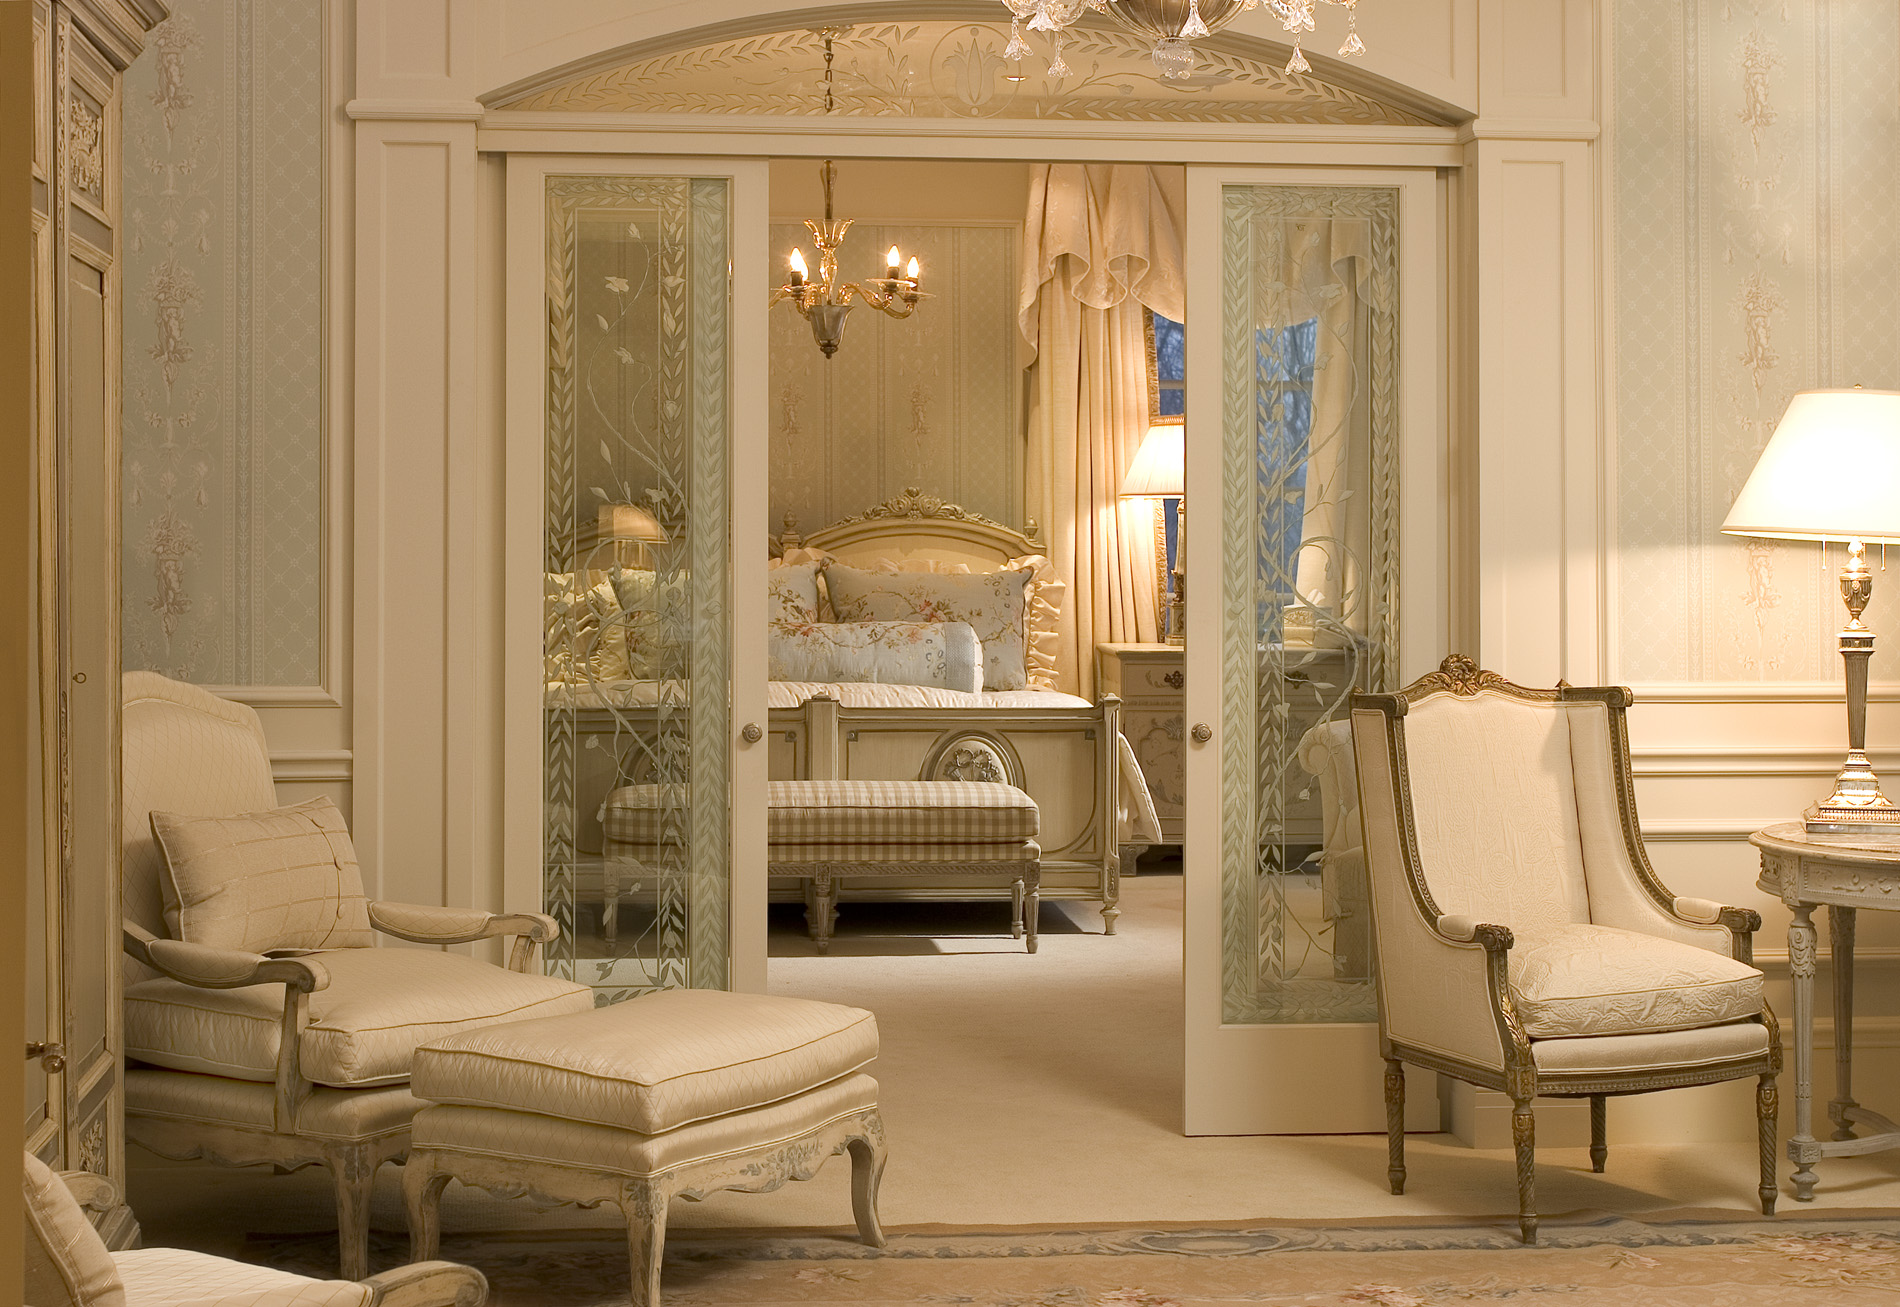 10 signs that you might be an interior designer